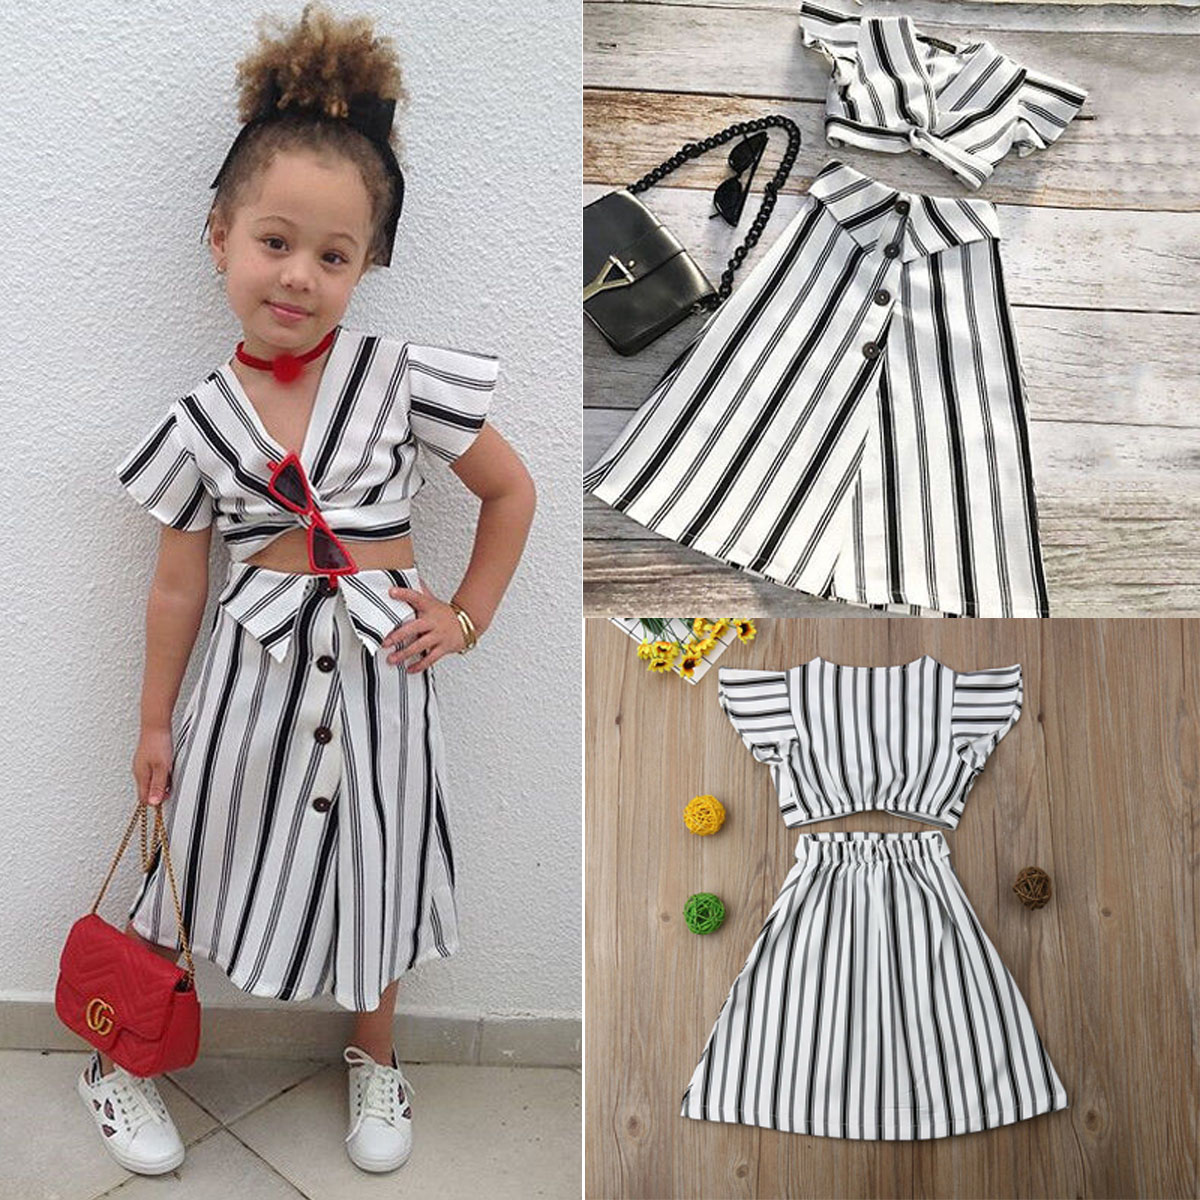 8f7c1eedf7 Details about US Toddler Baby Girl Crop Tops T-shirt+Skirt Outfit Clothes  Kid Party Dress